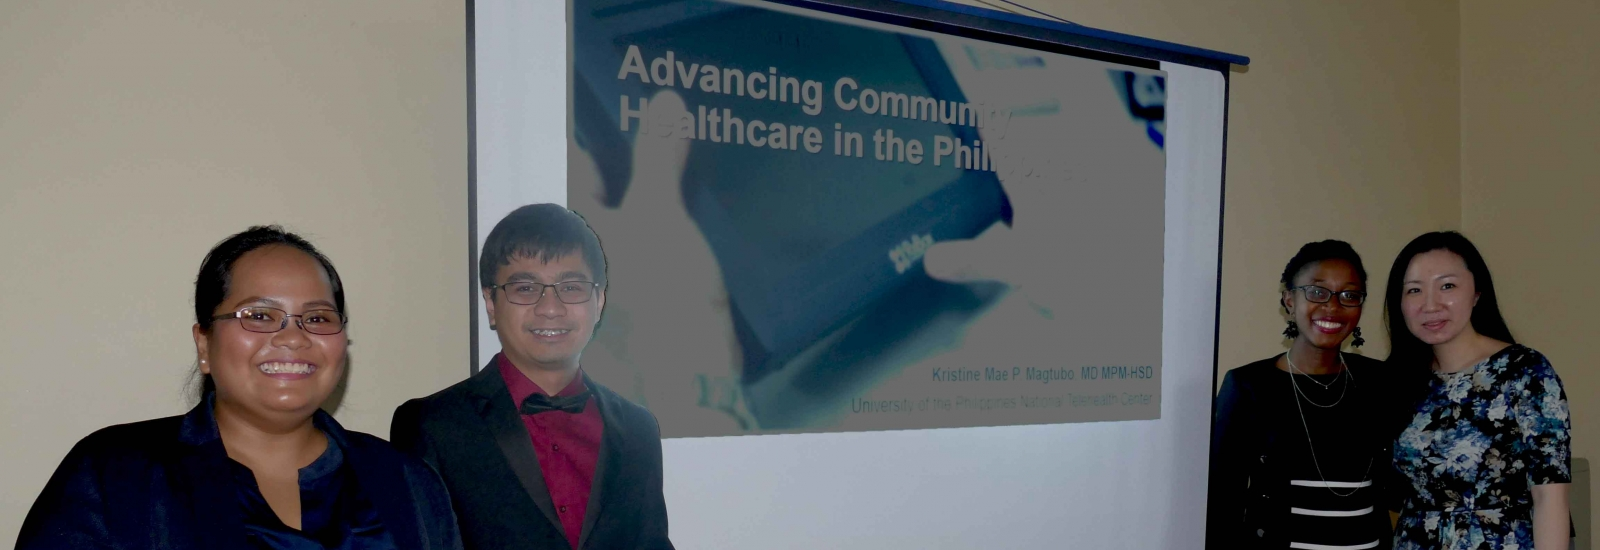 Improving Community Healthcare in The Philippines